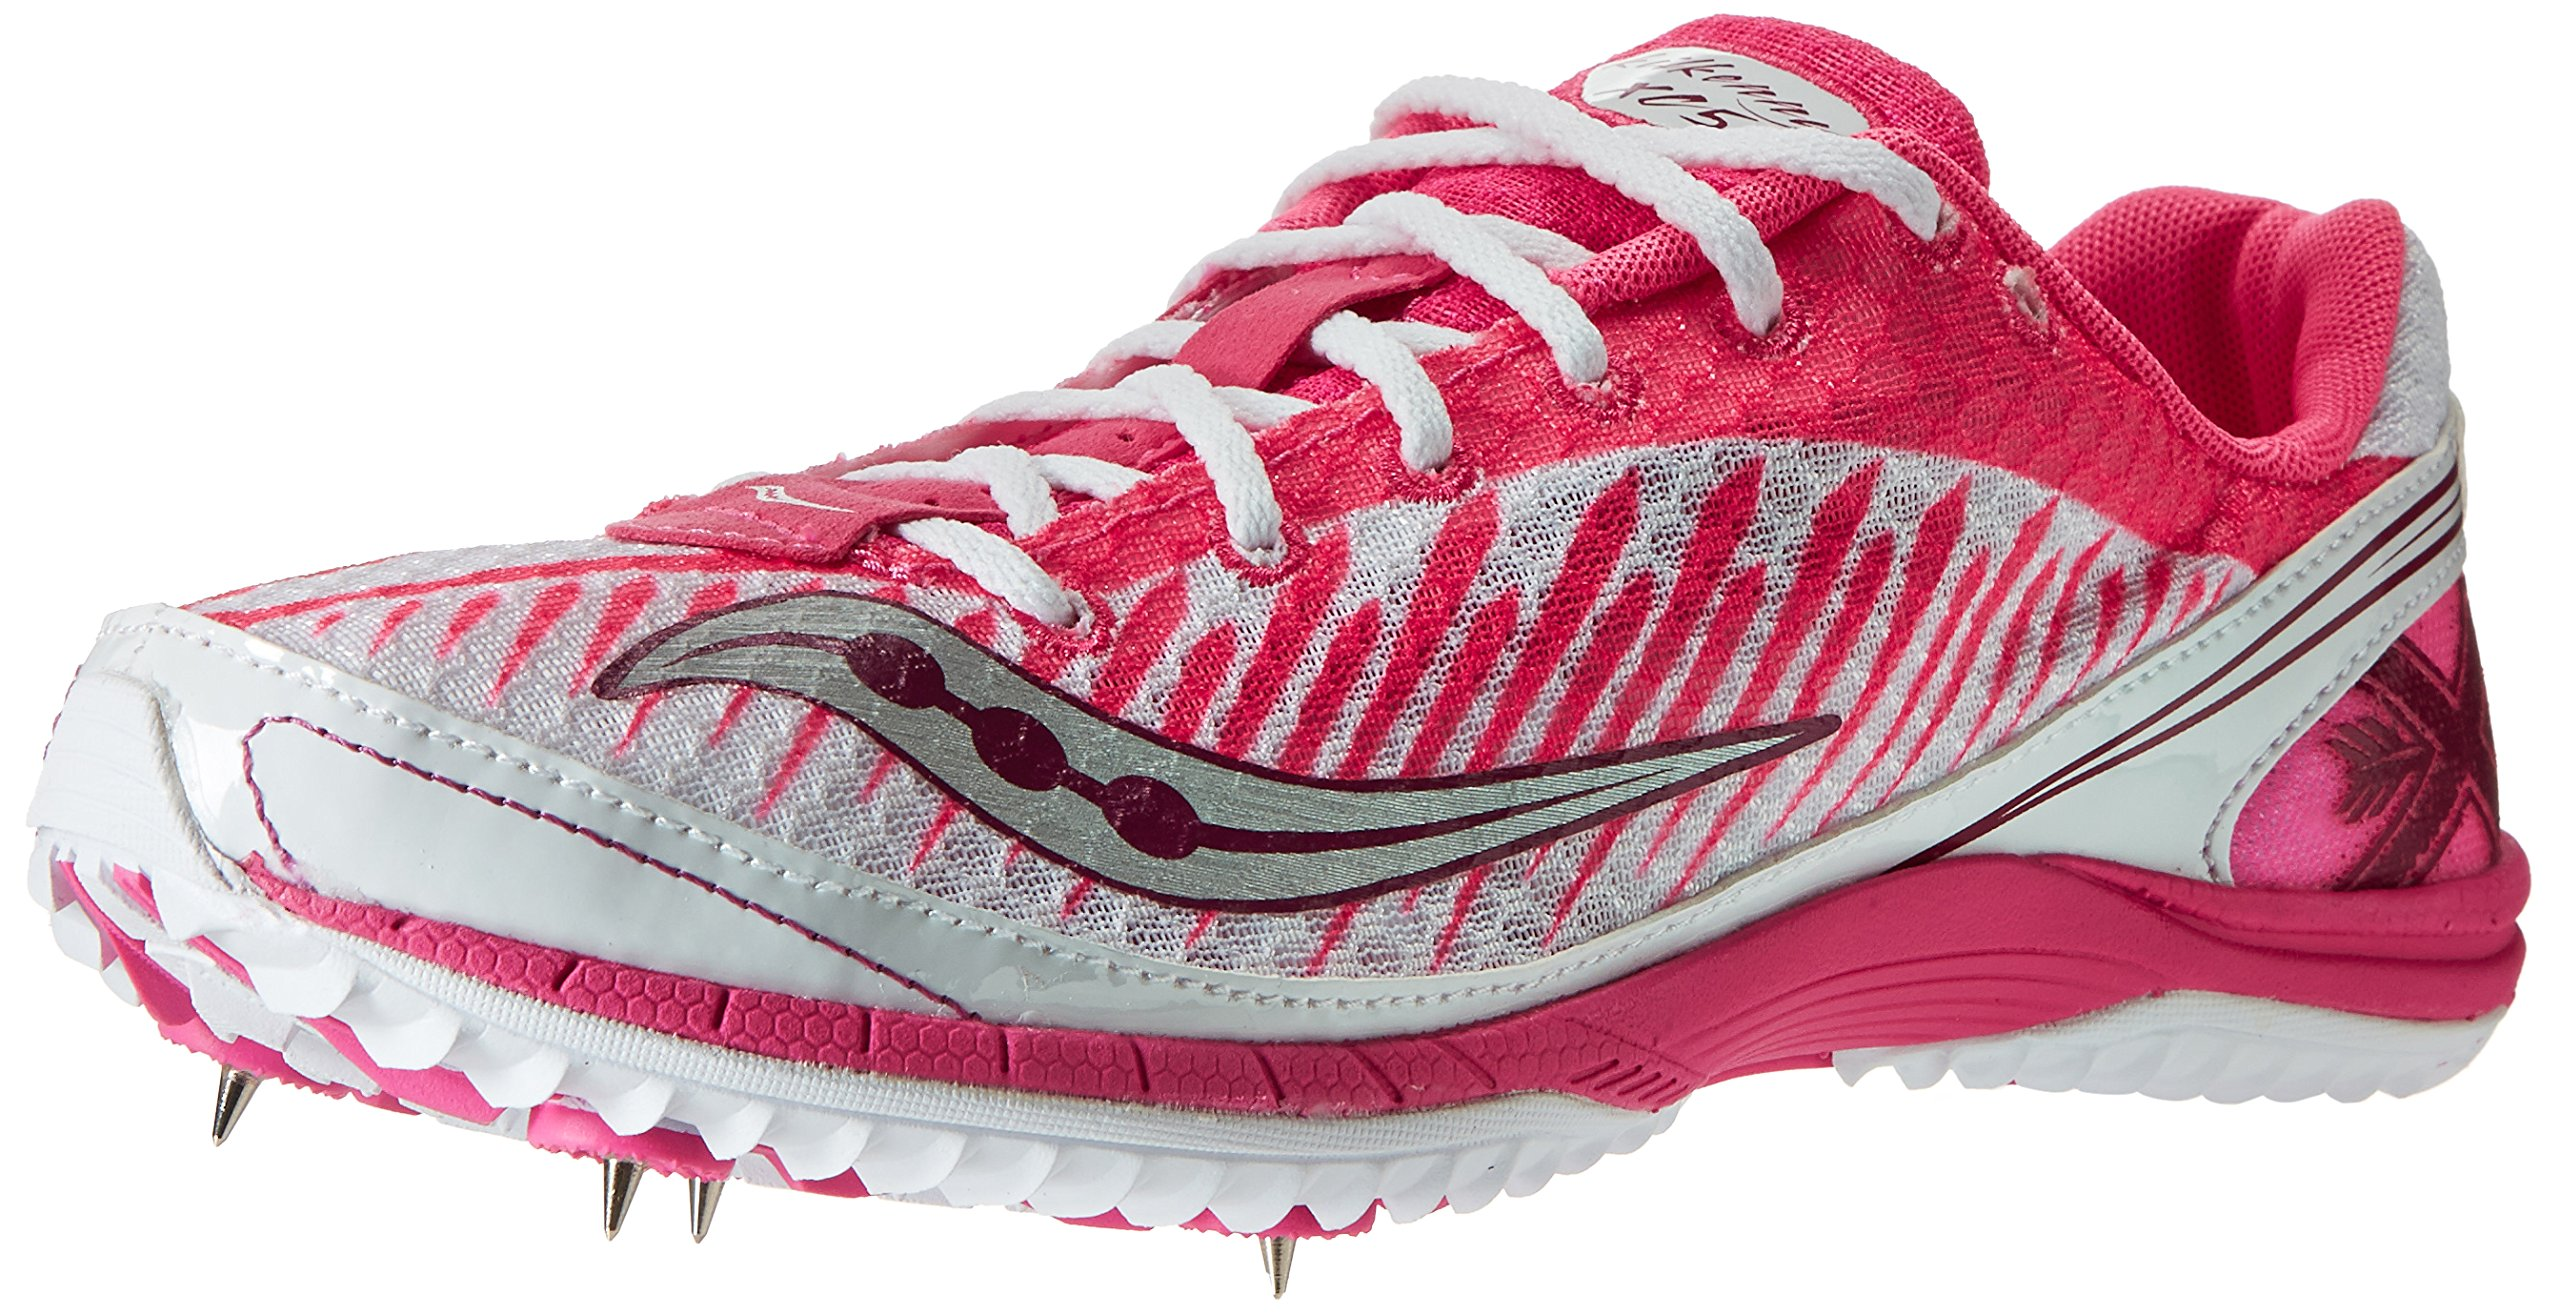 Saucony Women's Kilkenny XC5 Spike Cross Country Spike Shoe,White/Vizi Pink,9 M US